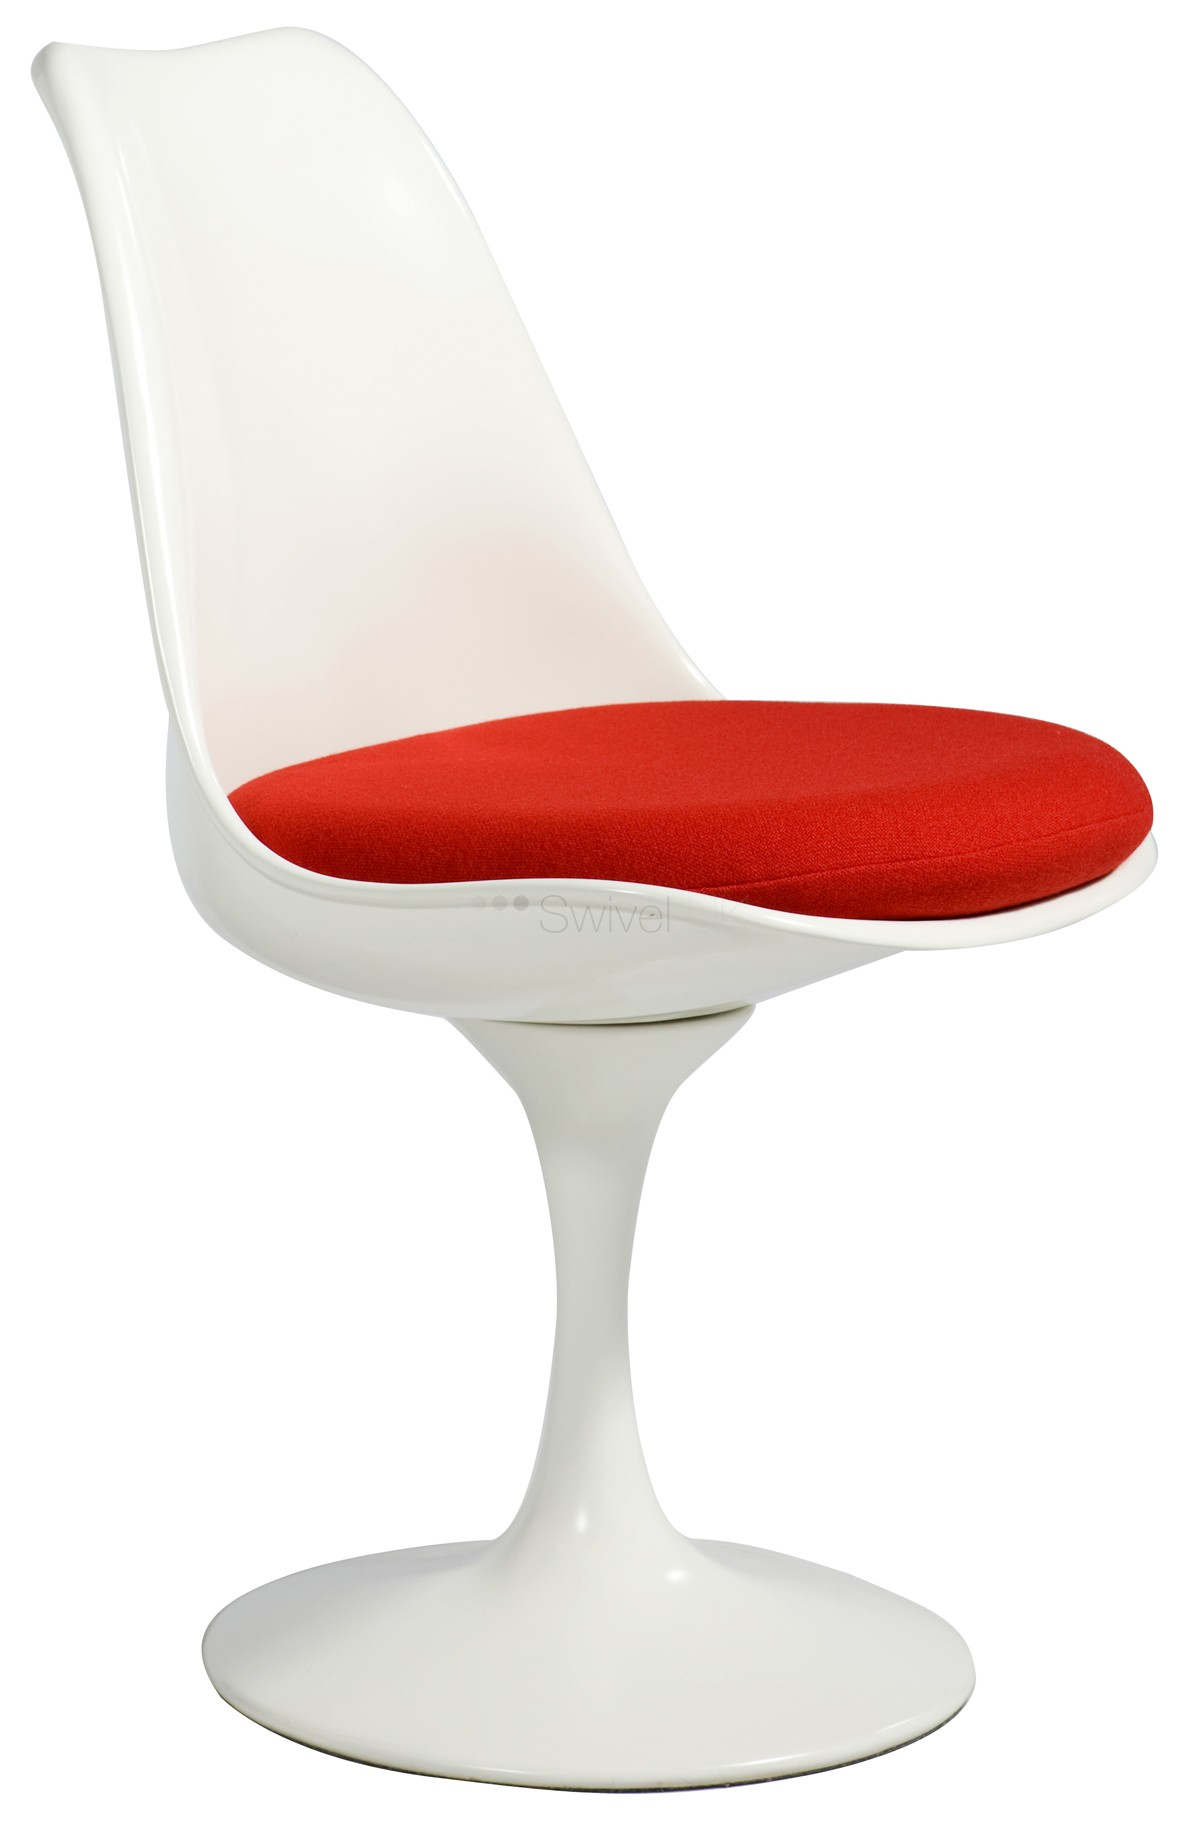 Eero Saarinen Replica Tulip Chair red cushion